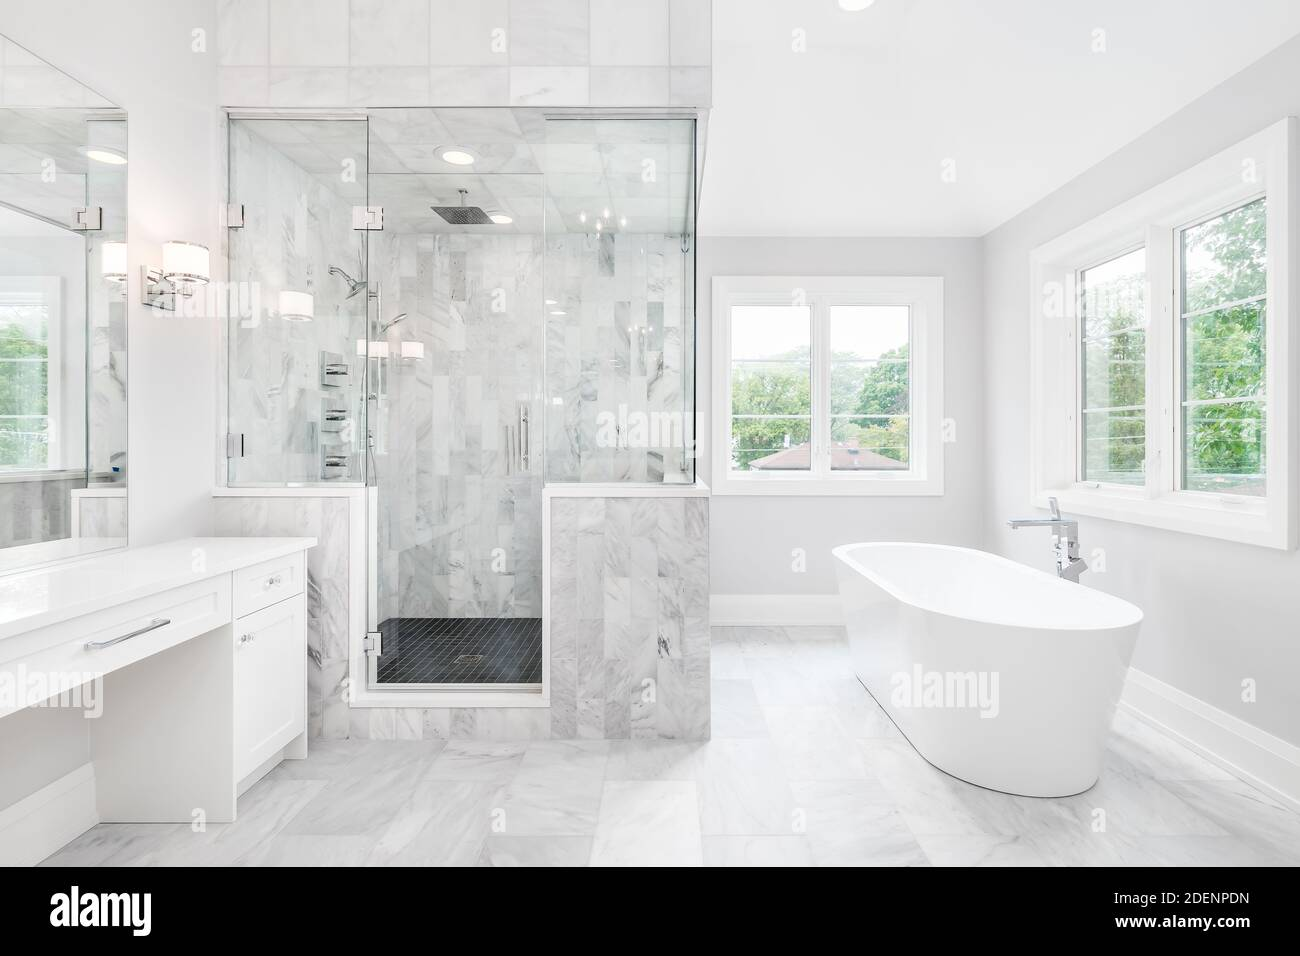 https www alamy com a large luxurious bathroom with a stand alone tub white vanity and a glass stand up shower with marble tiles and bench seat image387711905 html